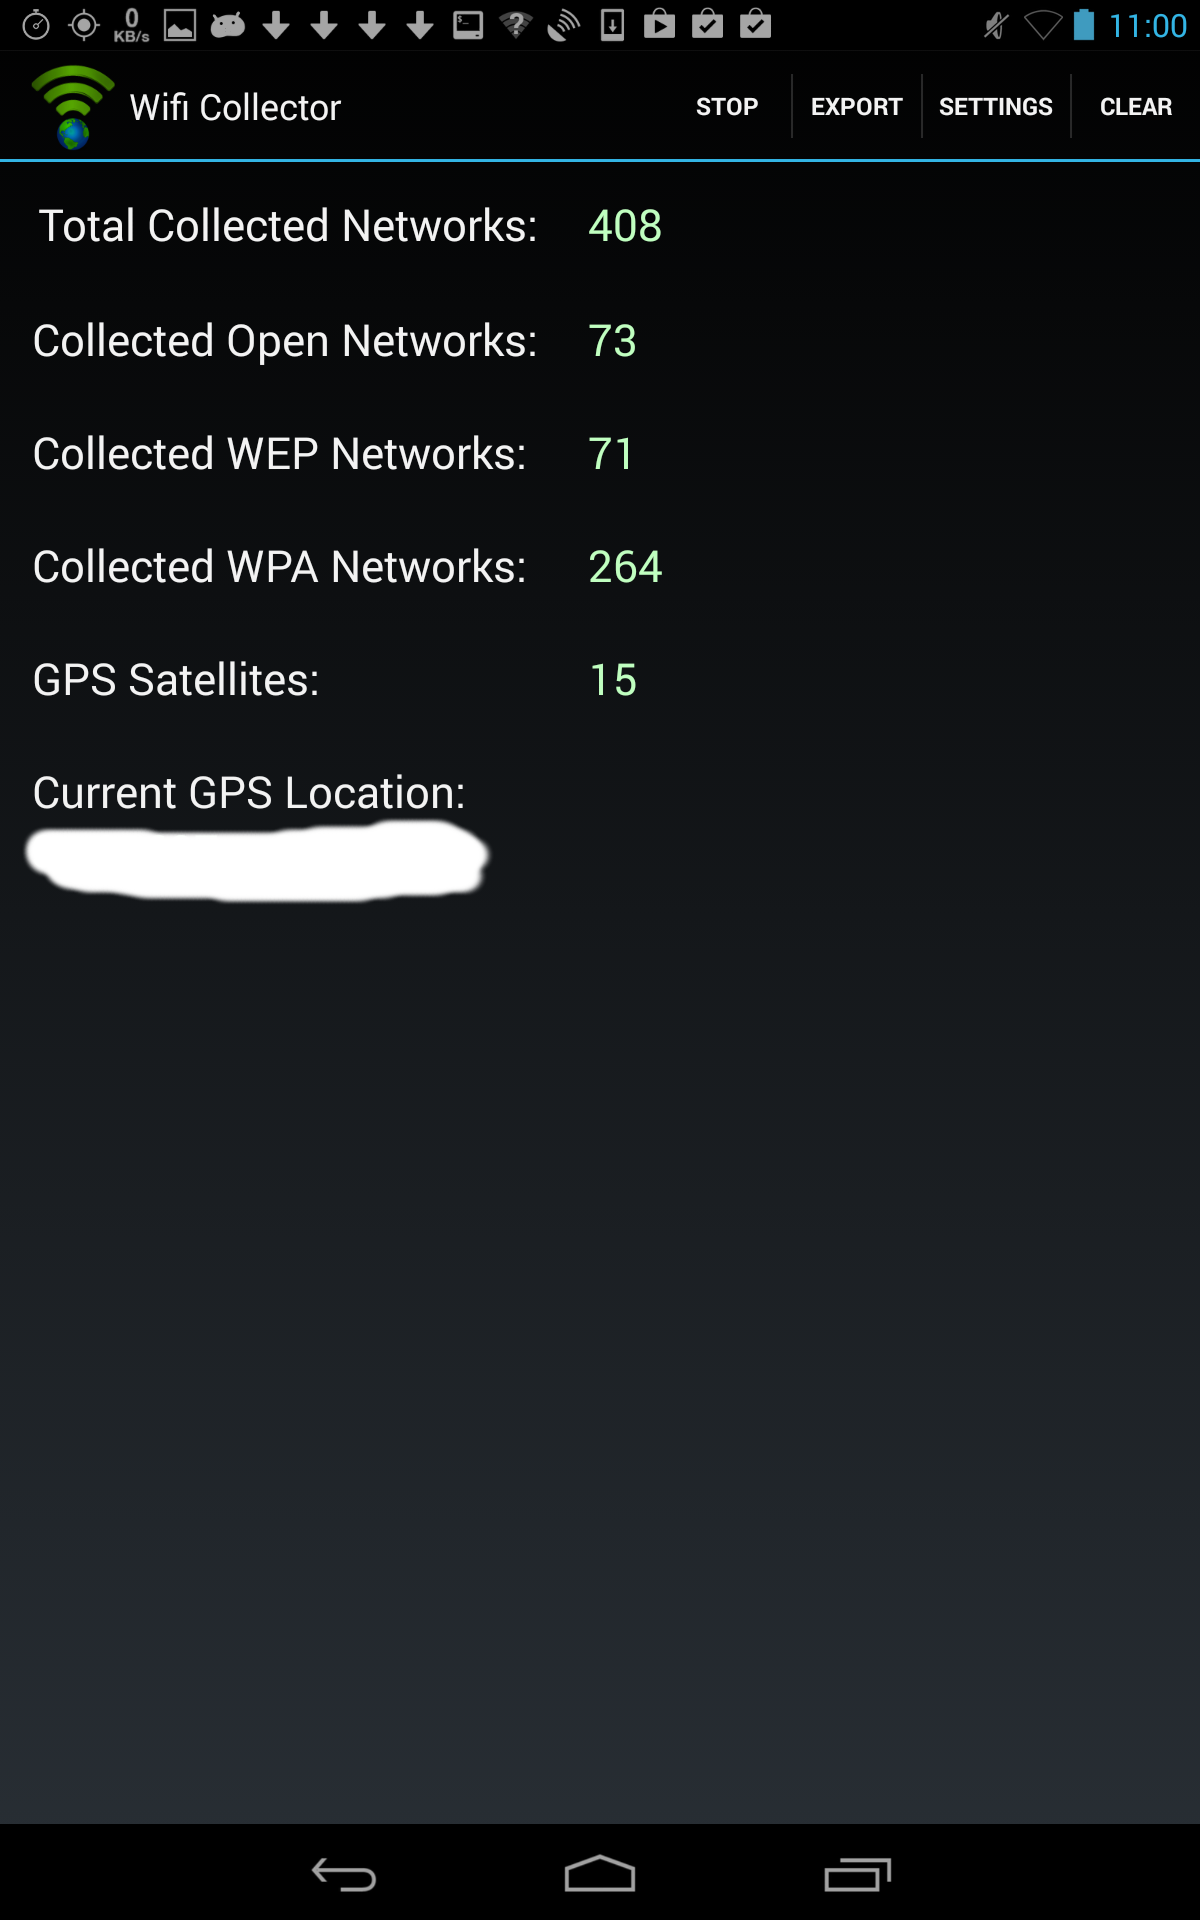 wifi collector collect wireless networks information and their